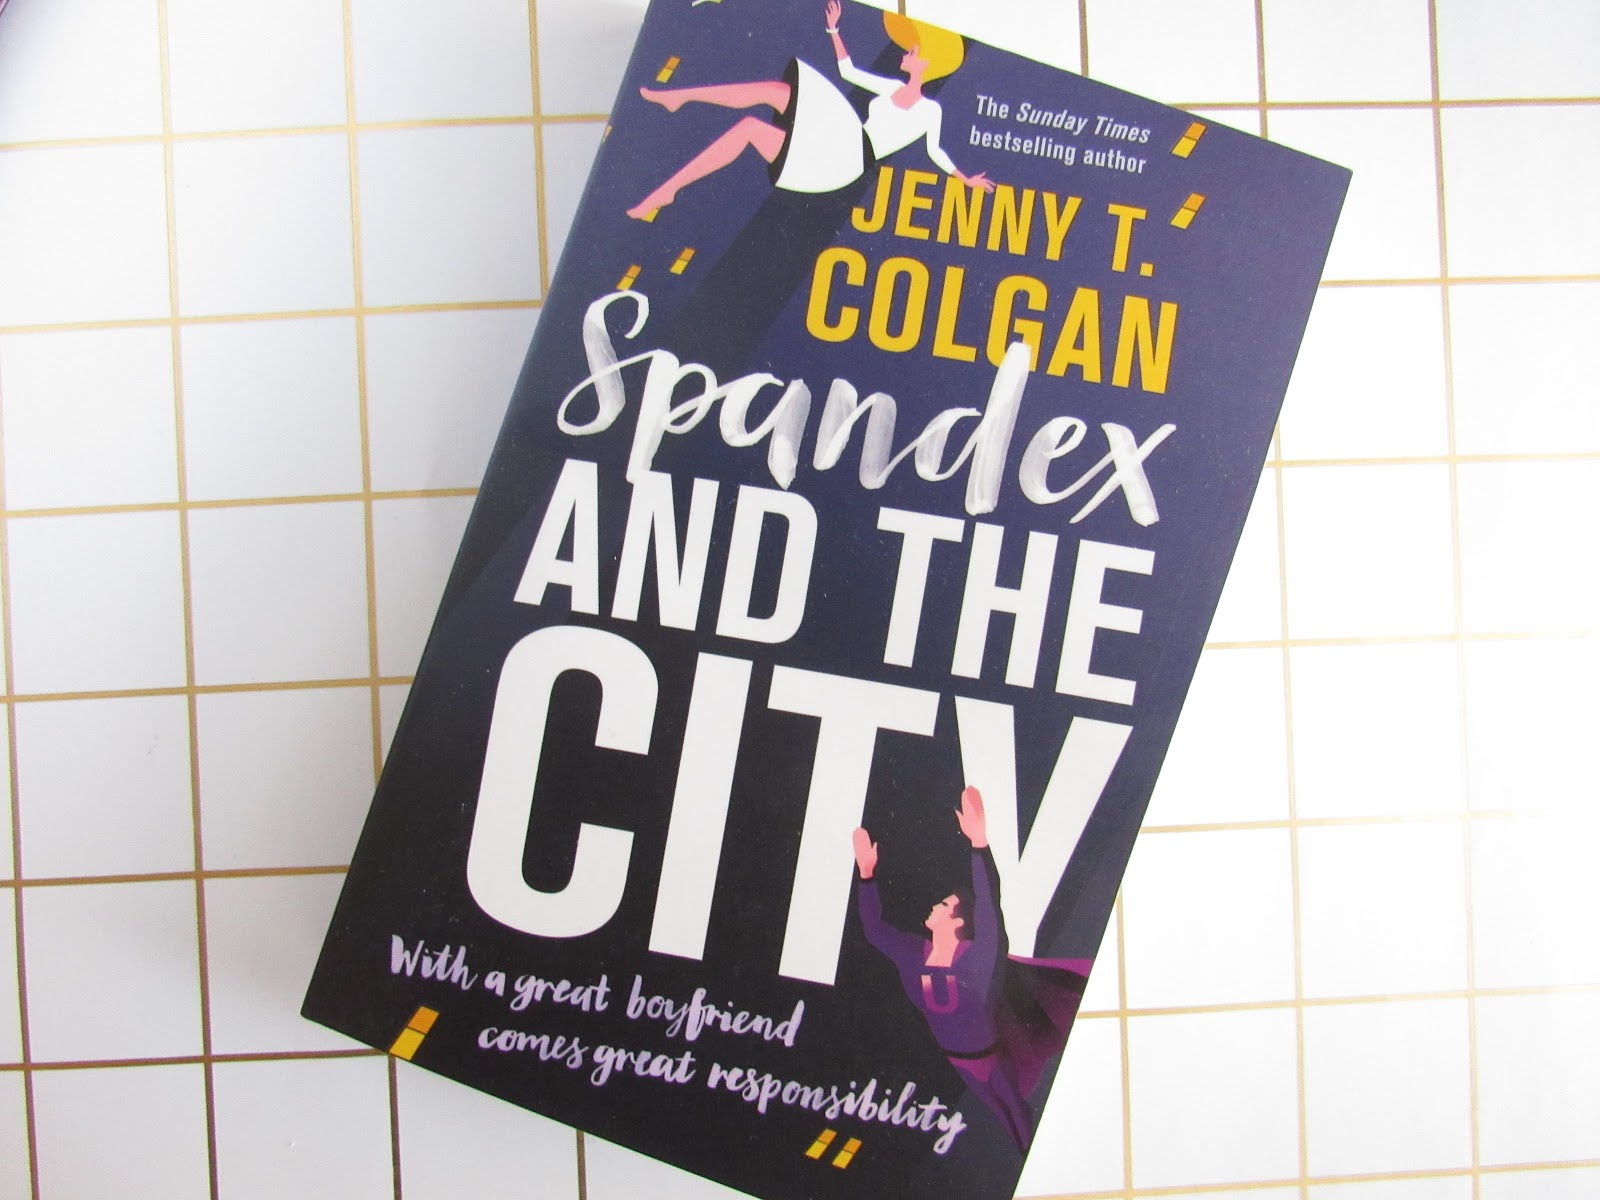 Blooming Fiction, lifestyle blog, Spandex And The City Book Tour